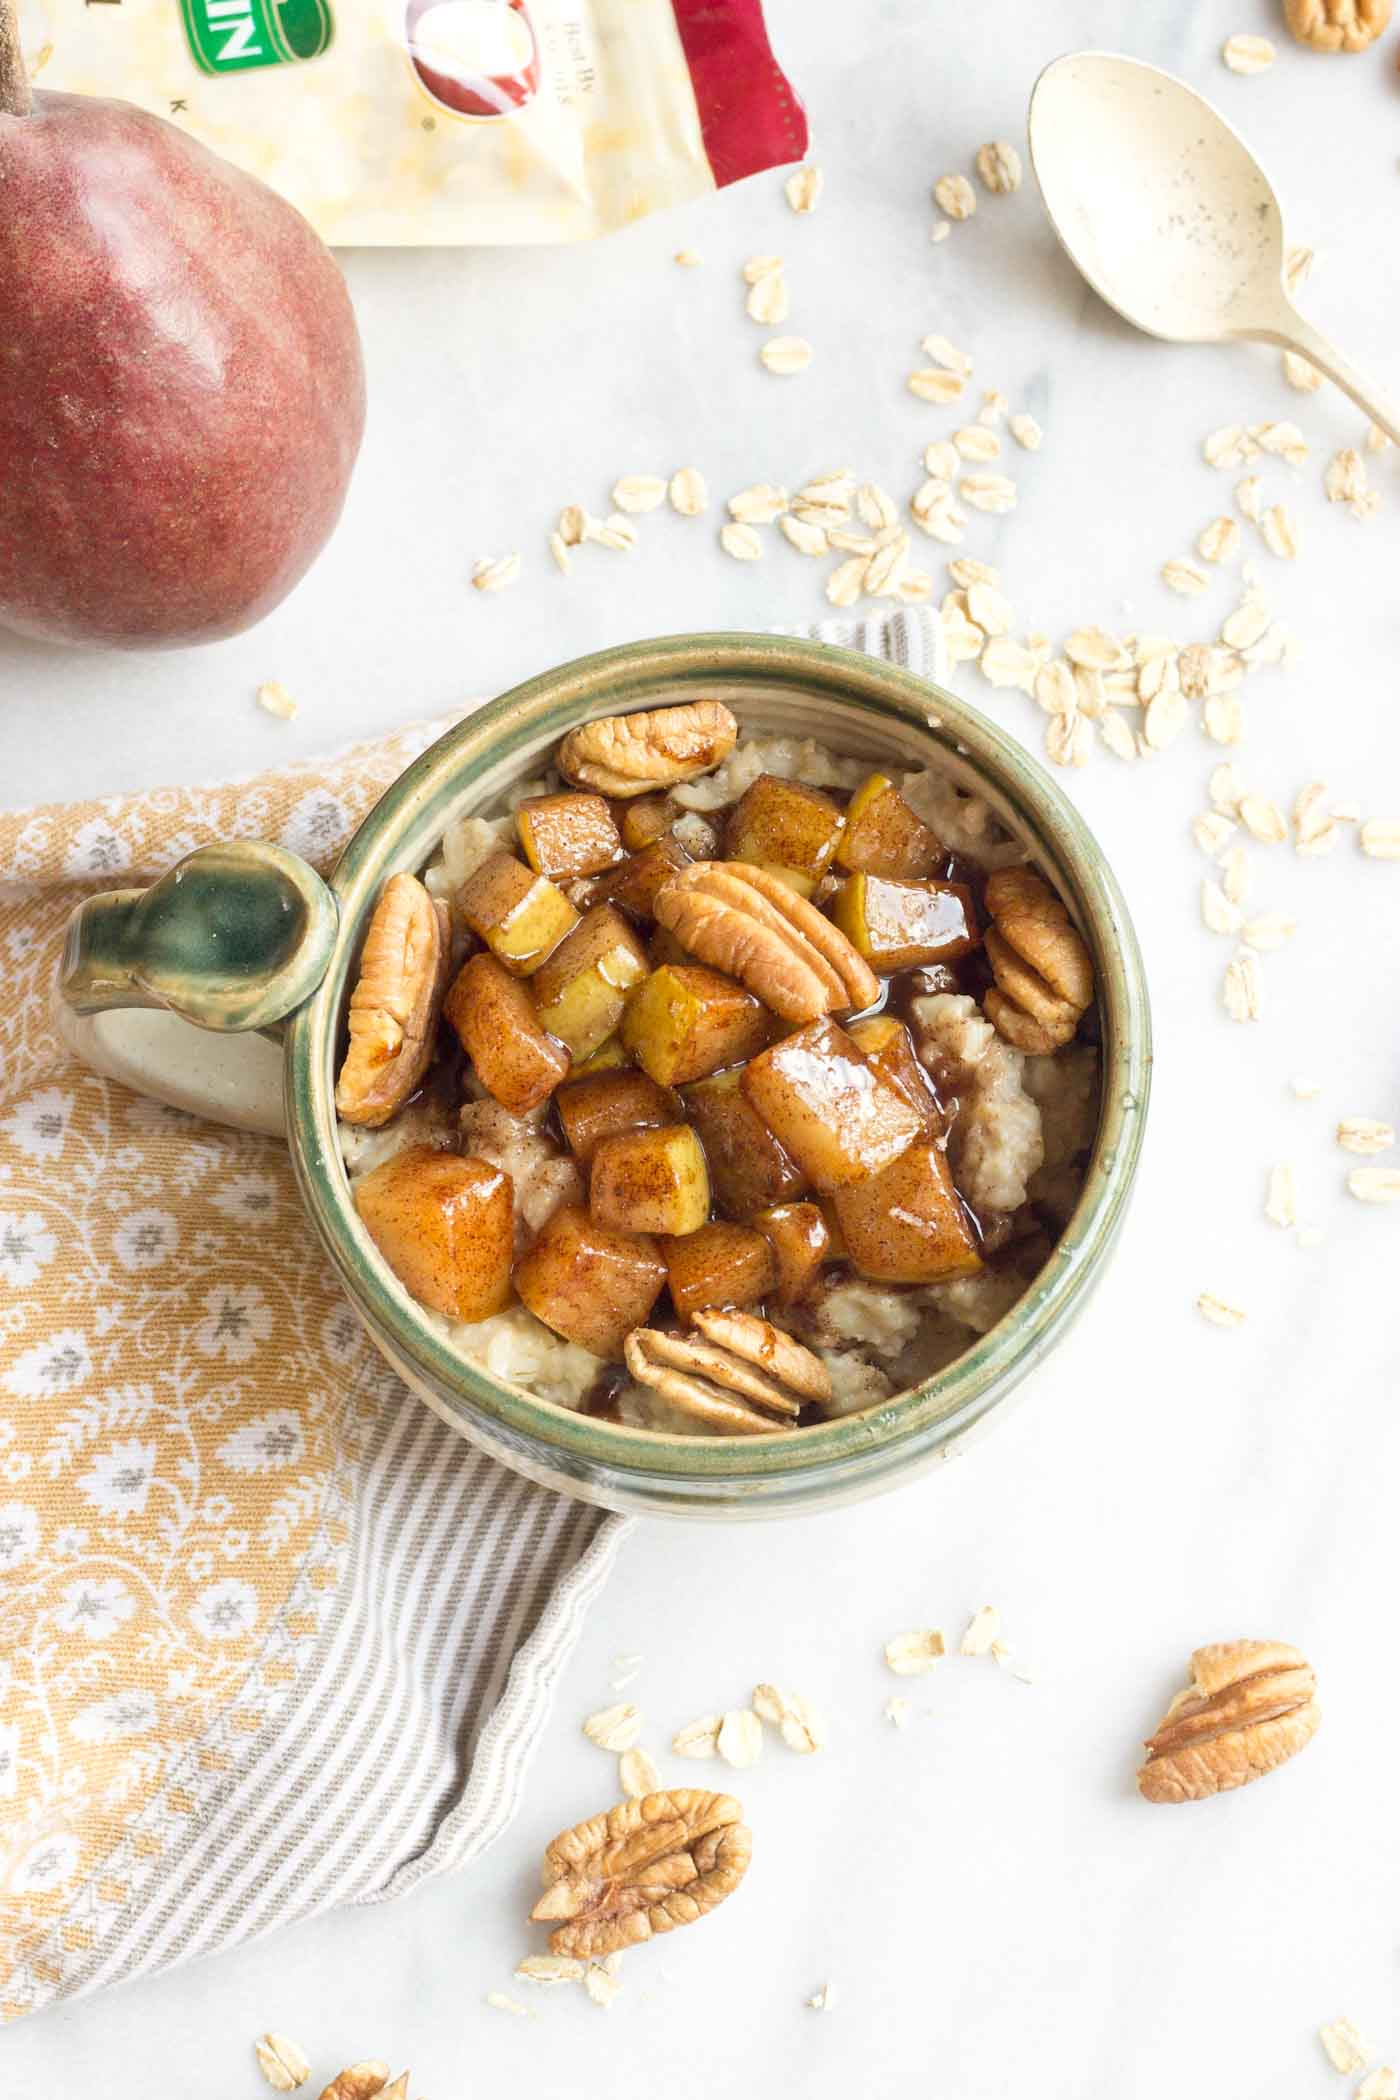 I can't get enough of this Caramelized Pear Oatmeal. It's all cinnamon-y and warm and comforting, especially on a chilly fall morning! YAY!!